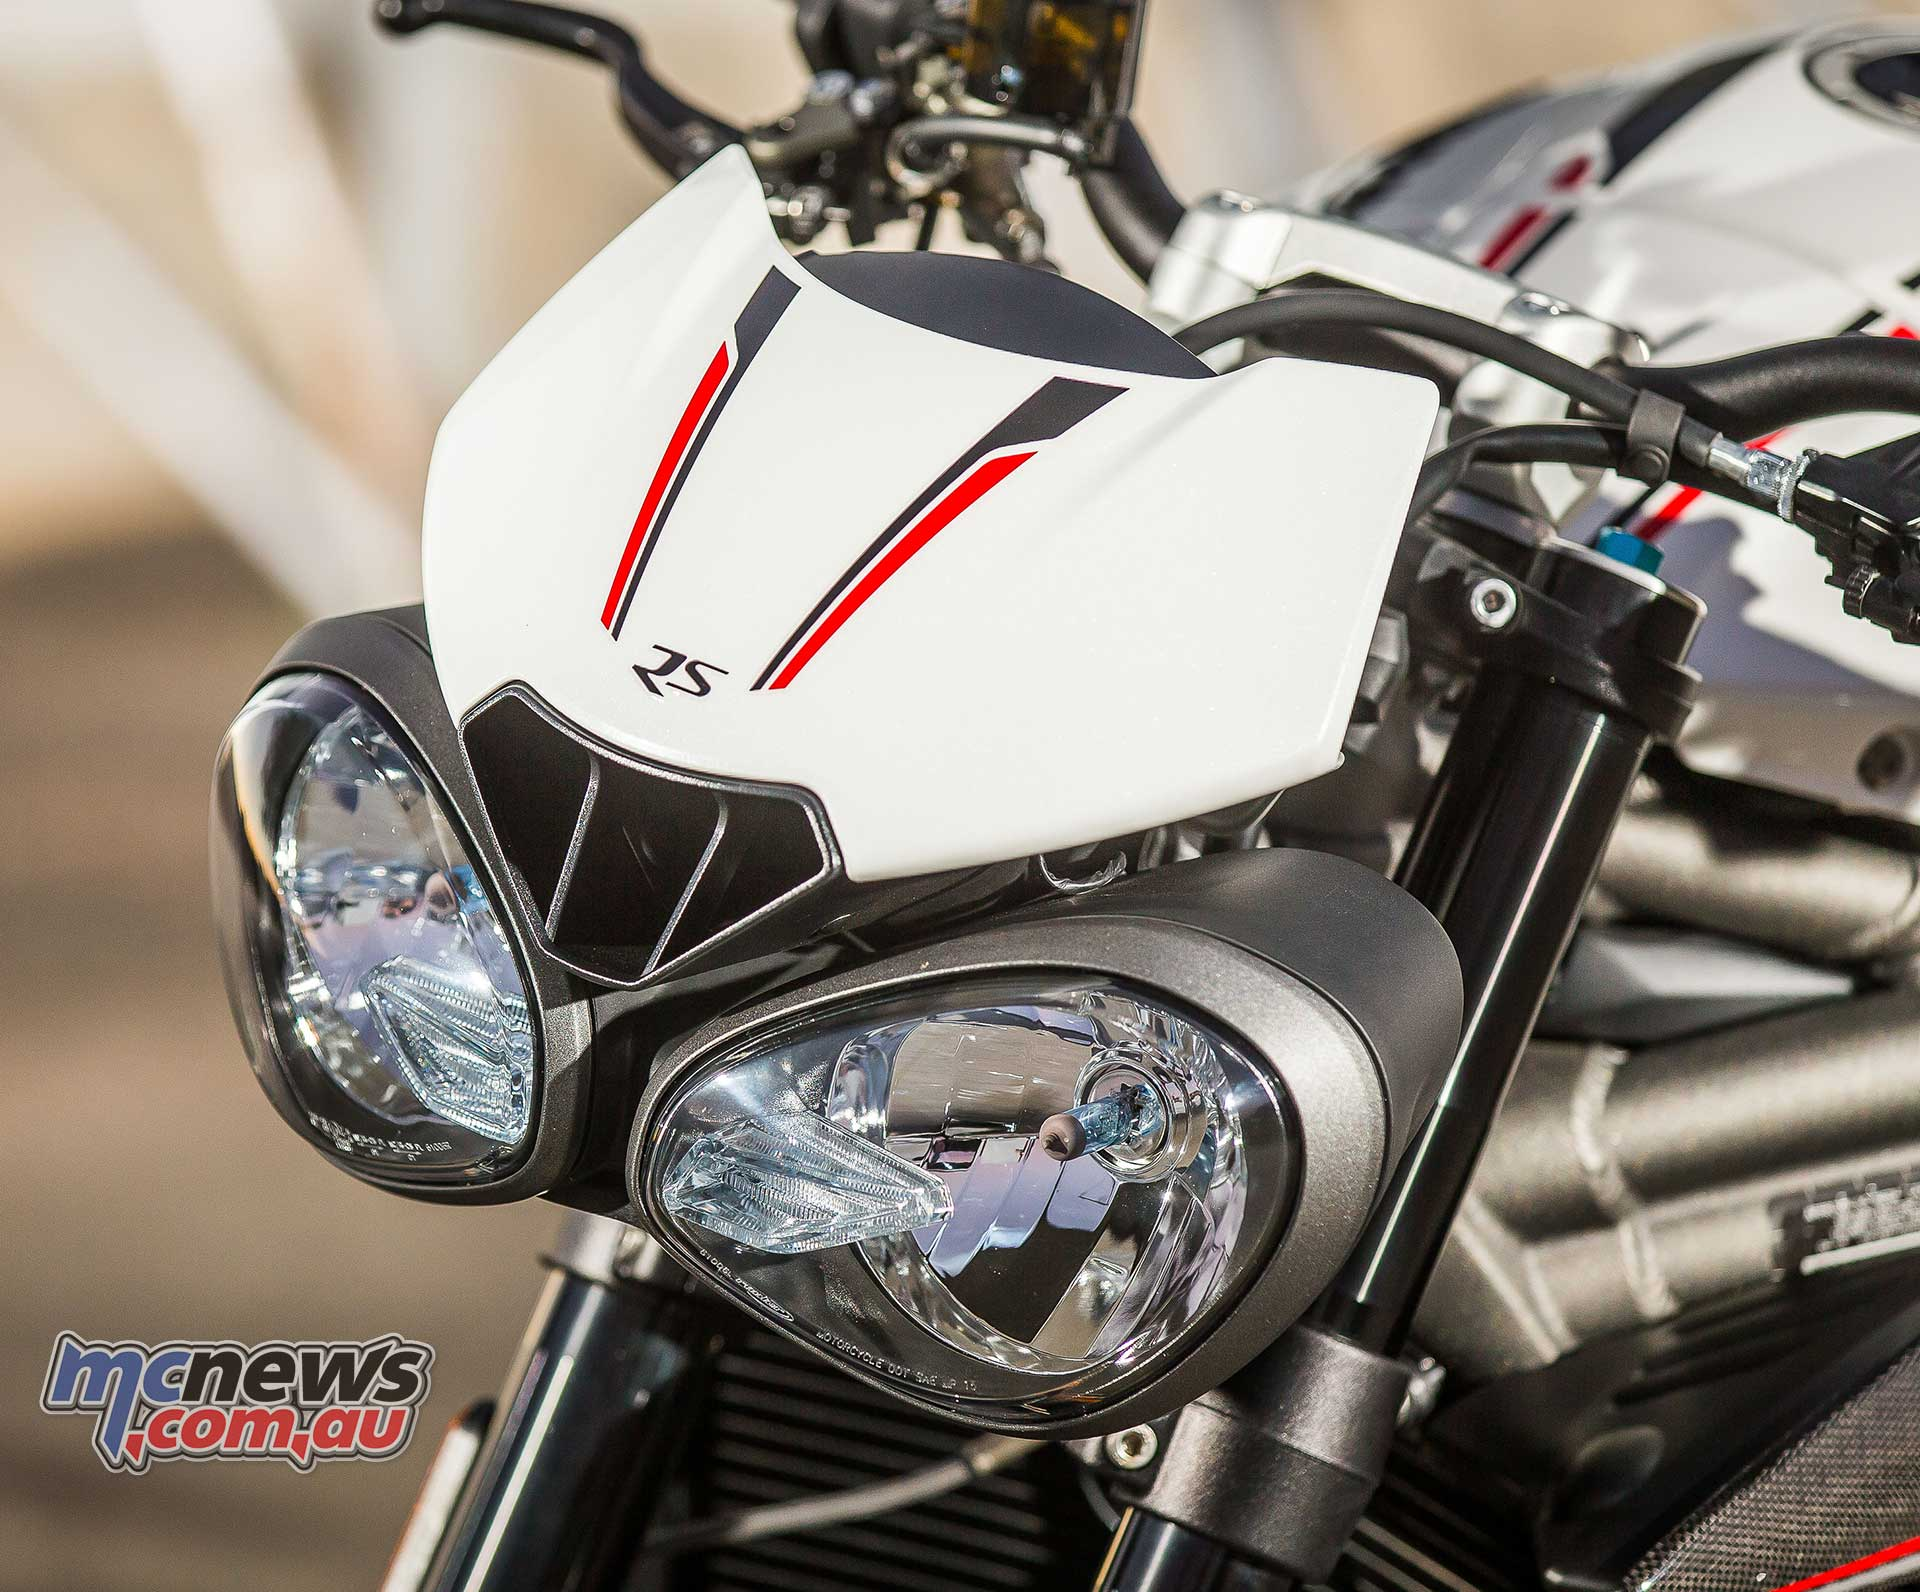 Triumph Speed Triple Rs Review Motorcycle Tests Mcnews